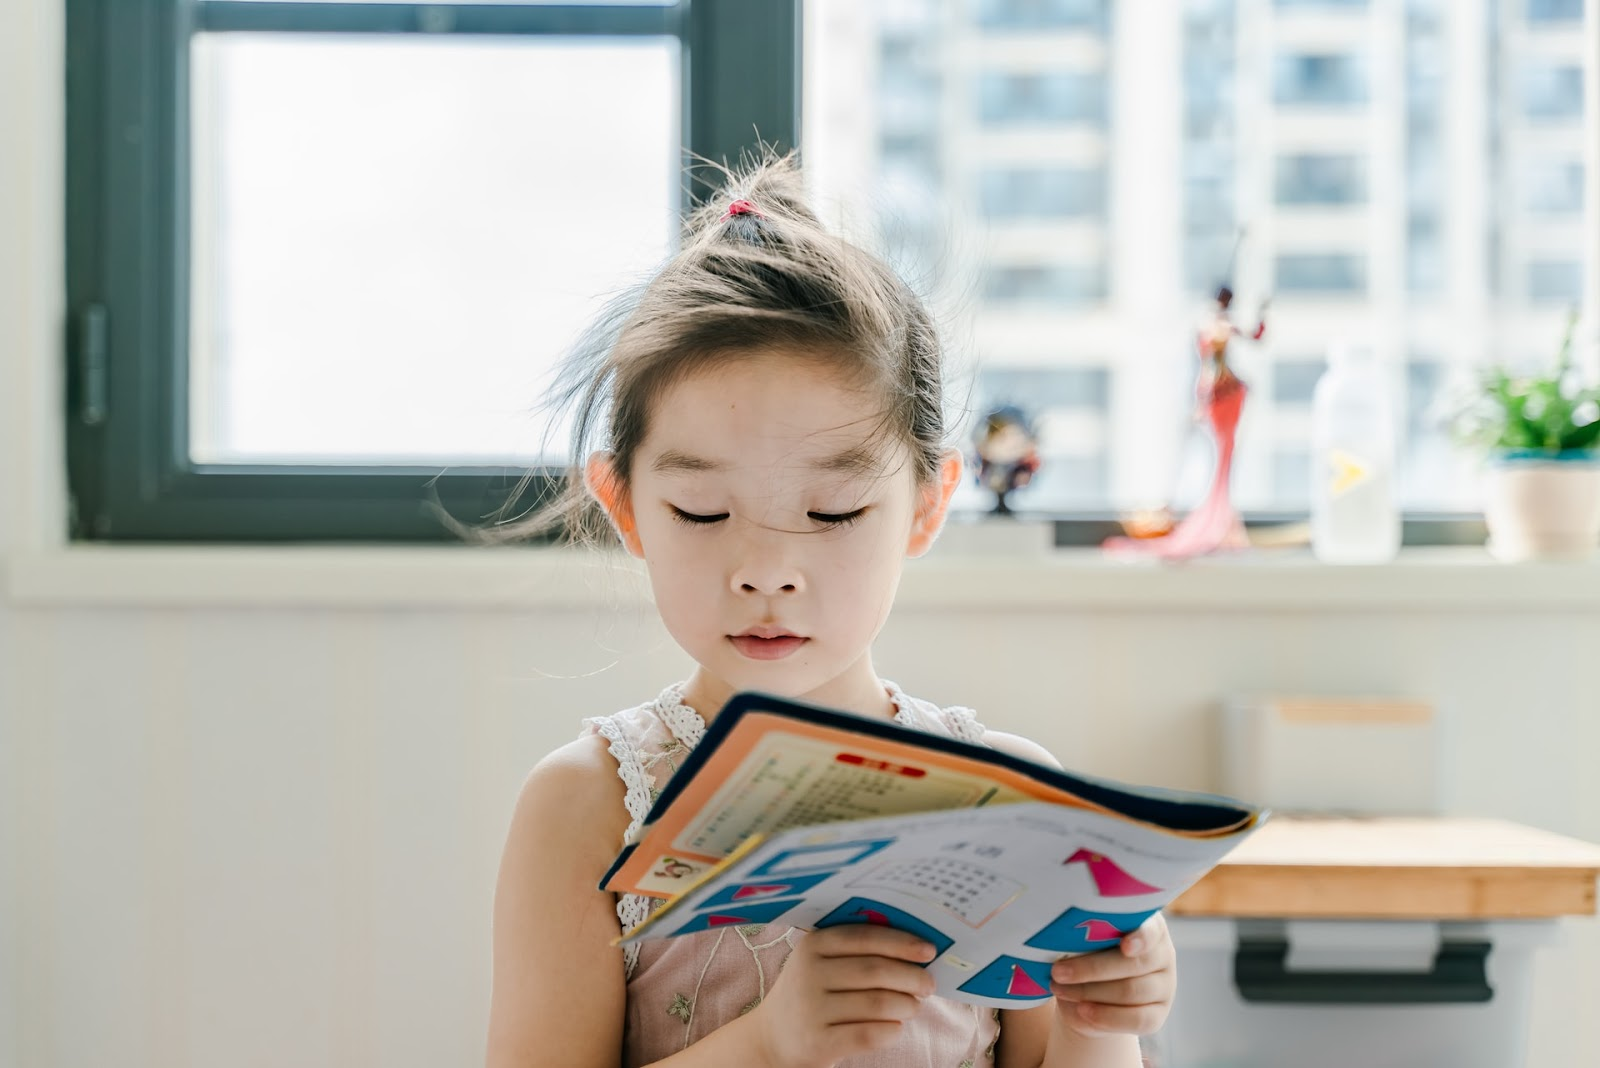 A young girl reads a book about paper oragami.